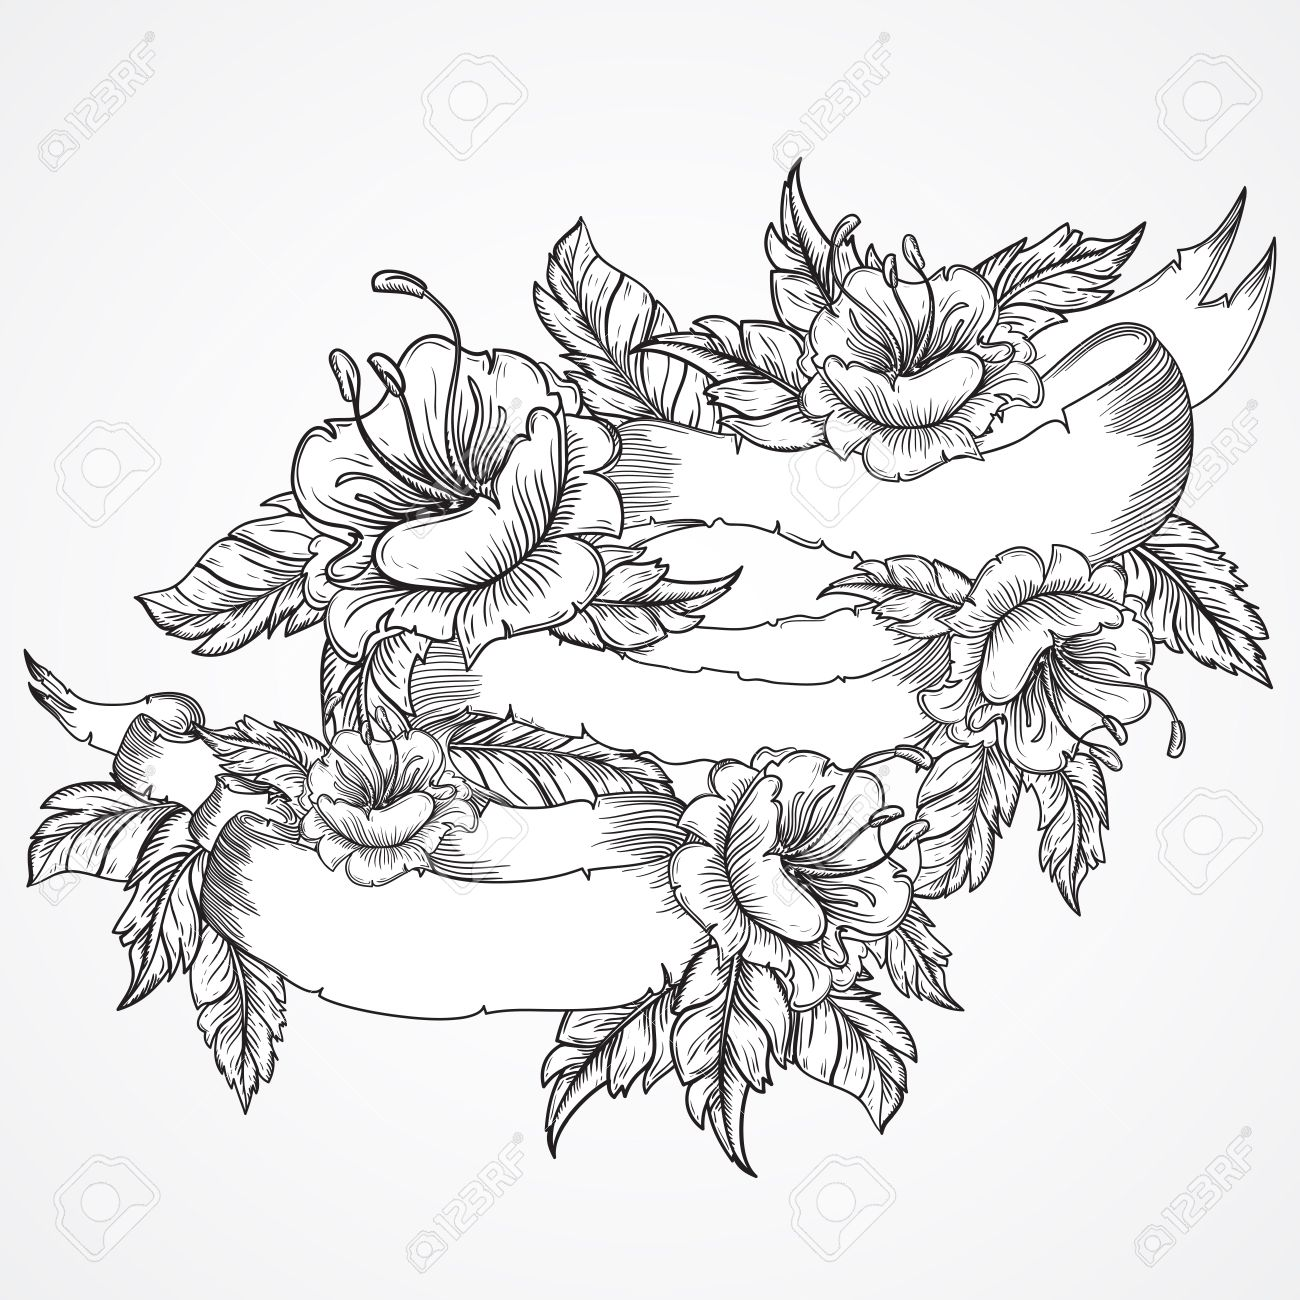 1300x1300 Vintage Floral Highly Detailed Hand Drawn Bouquet Of Flowers